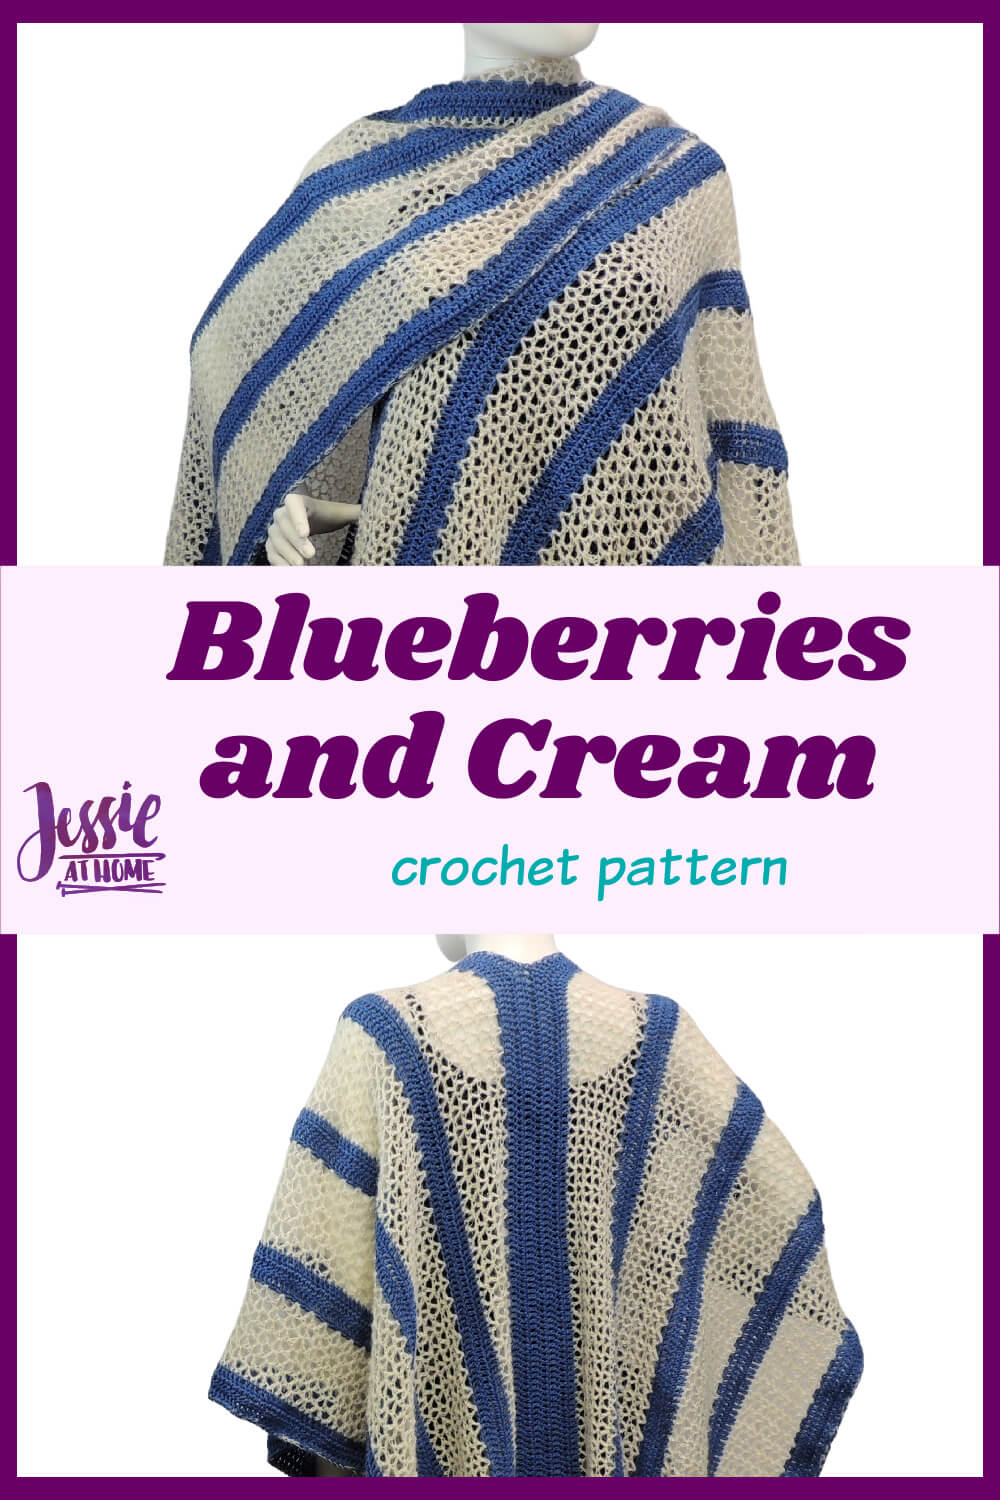 Blueberries and Cream - free crochet pattern for a fabulous ruana wrap